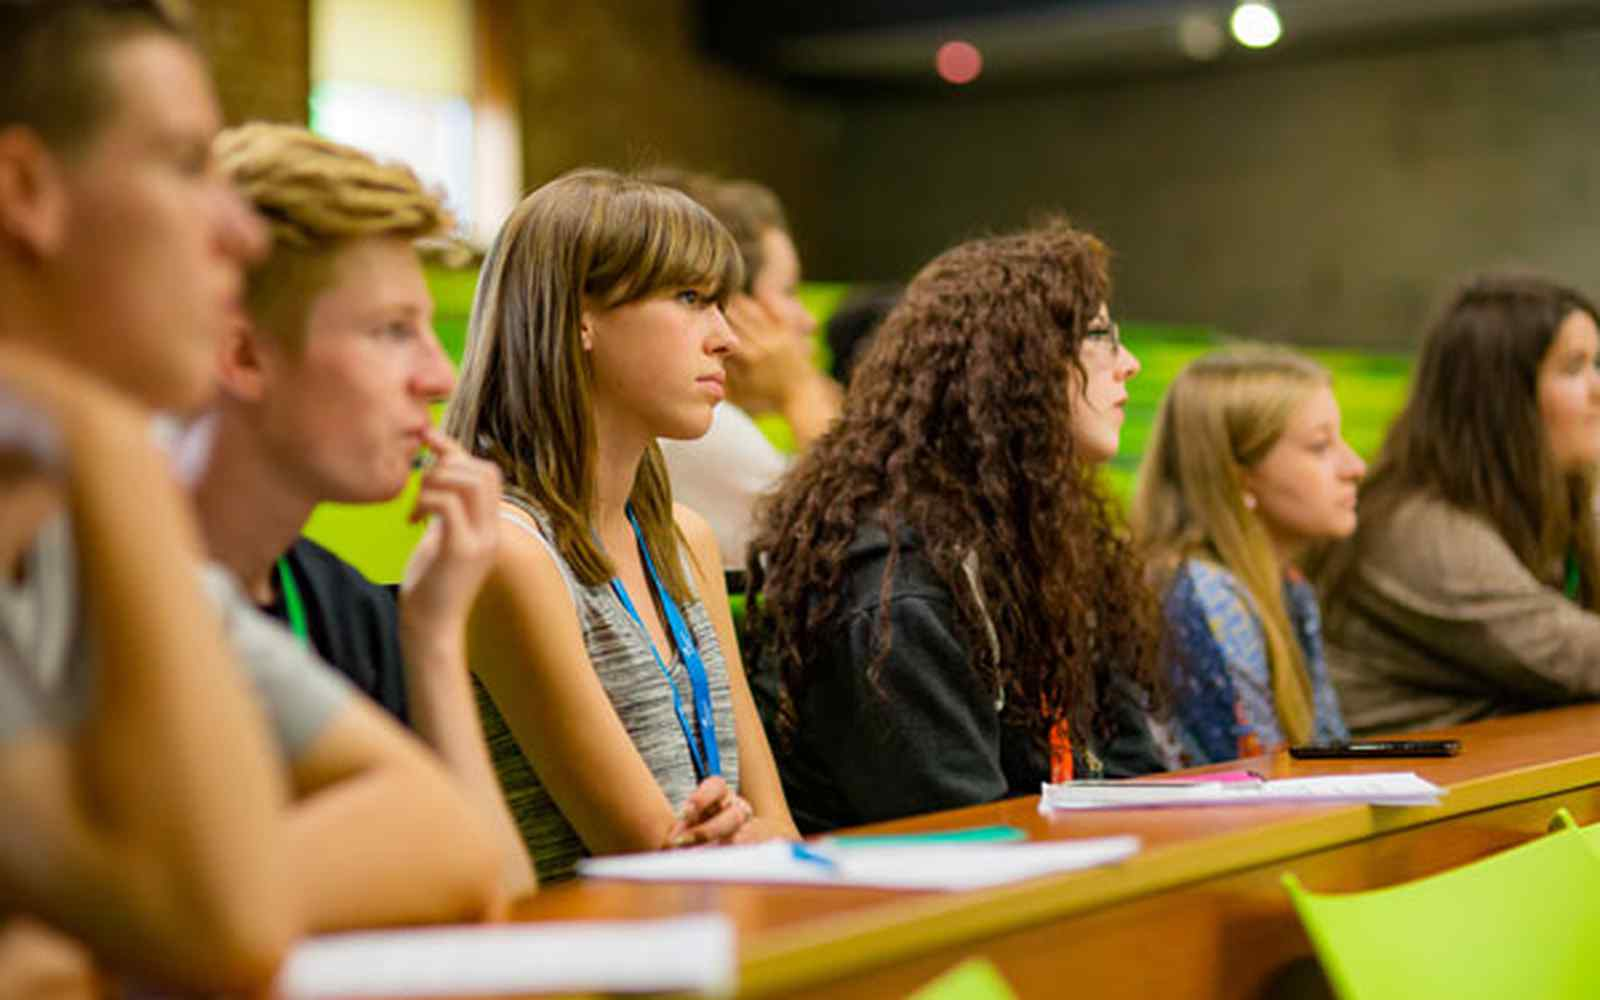 Year 12 students in lecture theatre